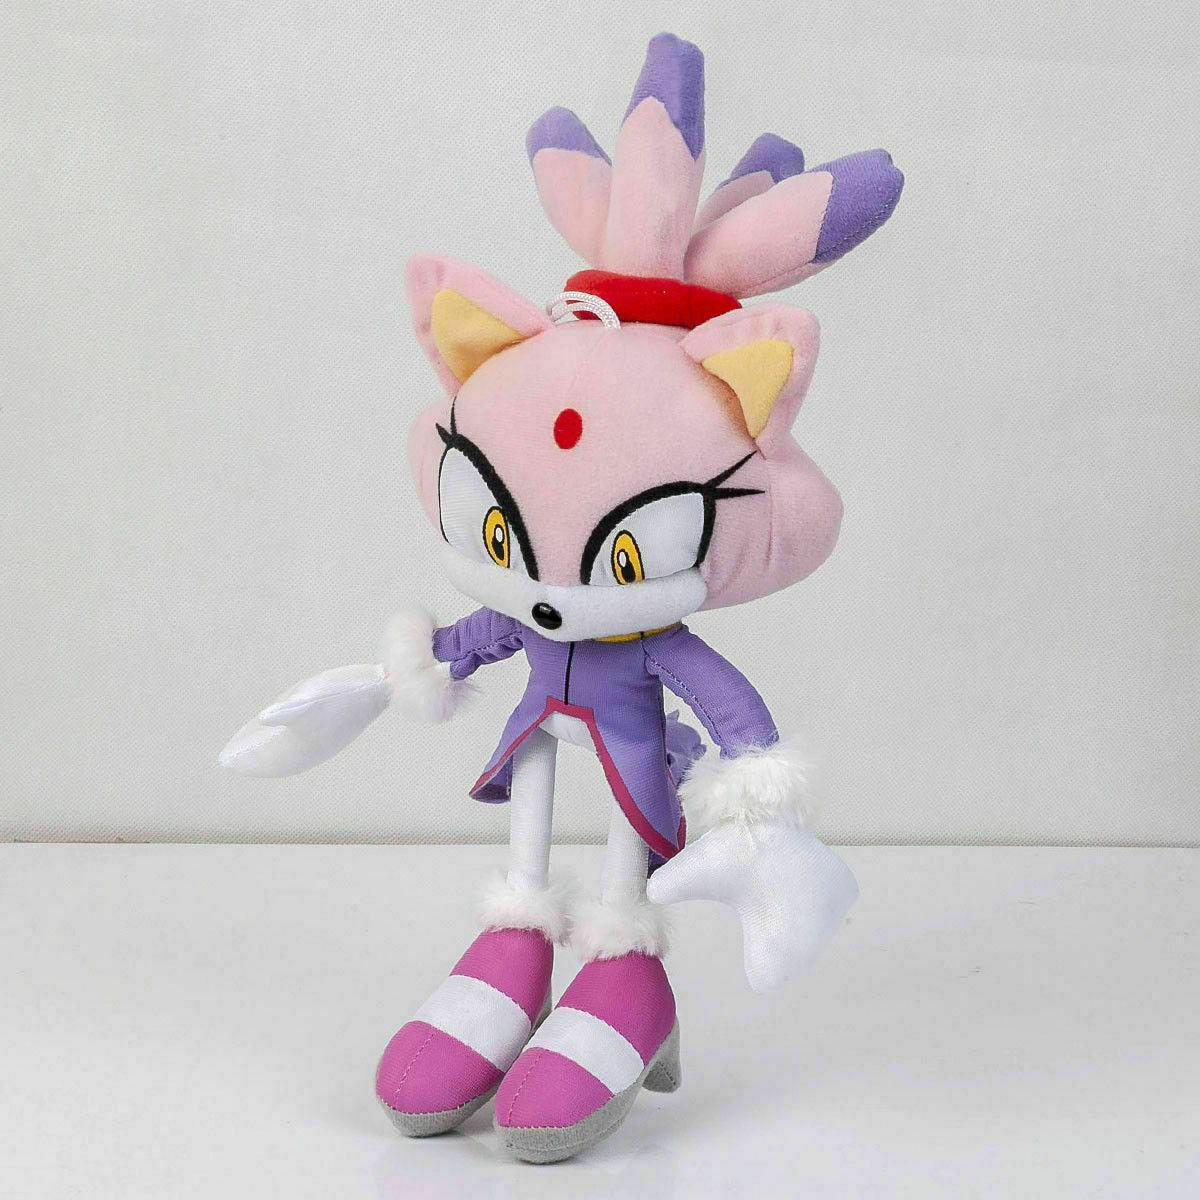 Blaze the Cat Plush Stuffed Figures - 8